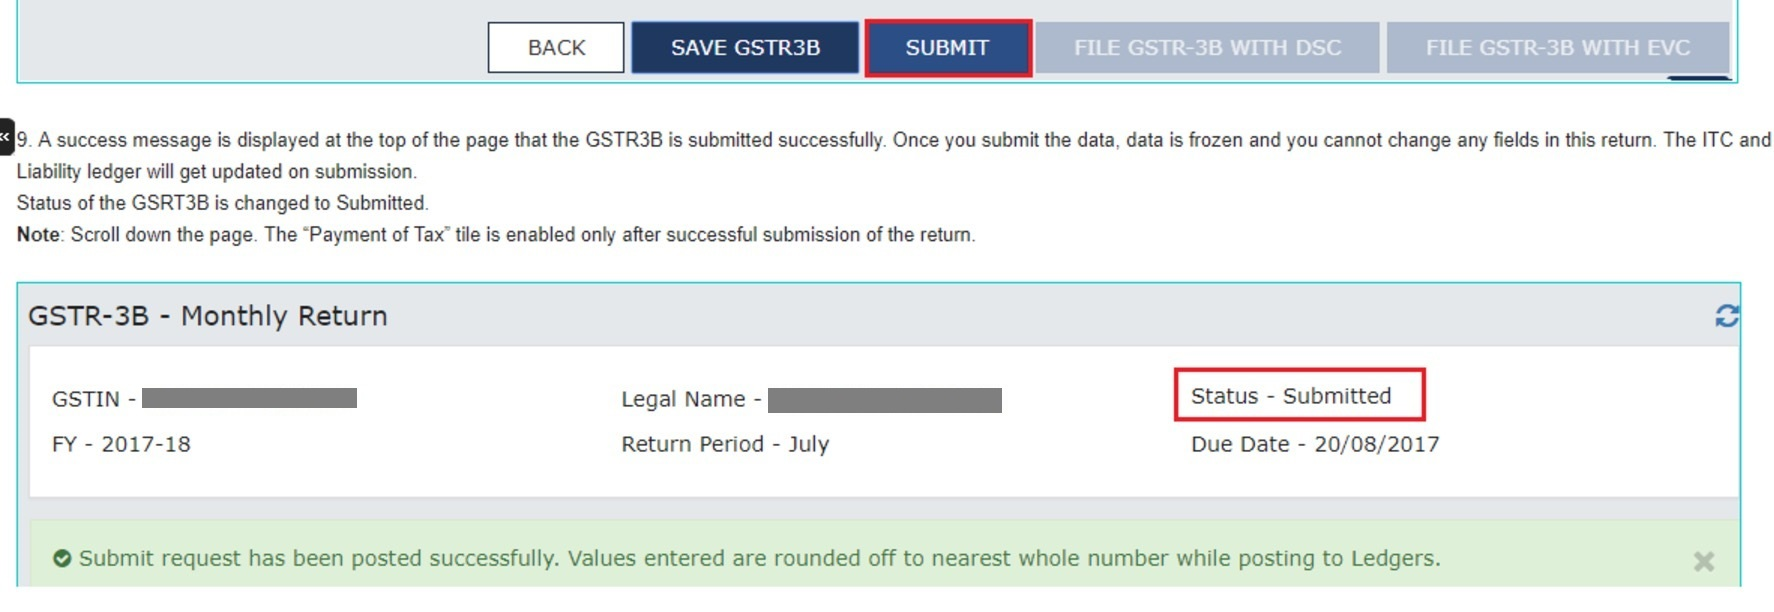 Revise GSTR-3B - status submitted